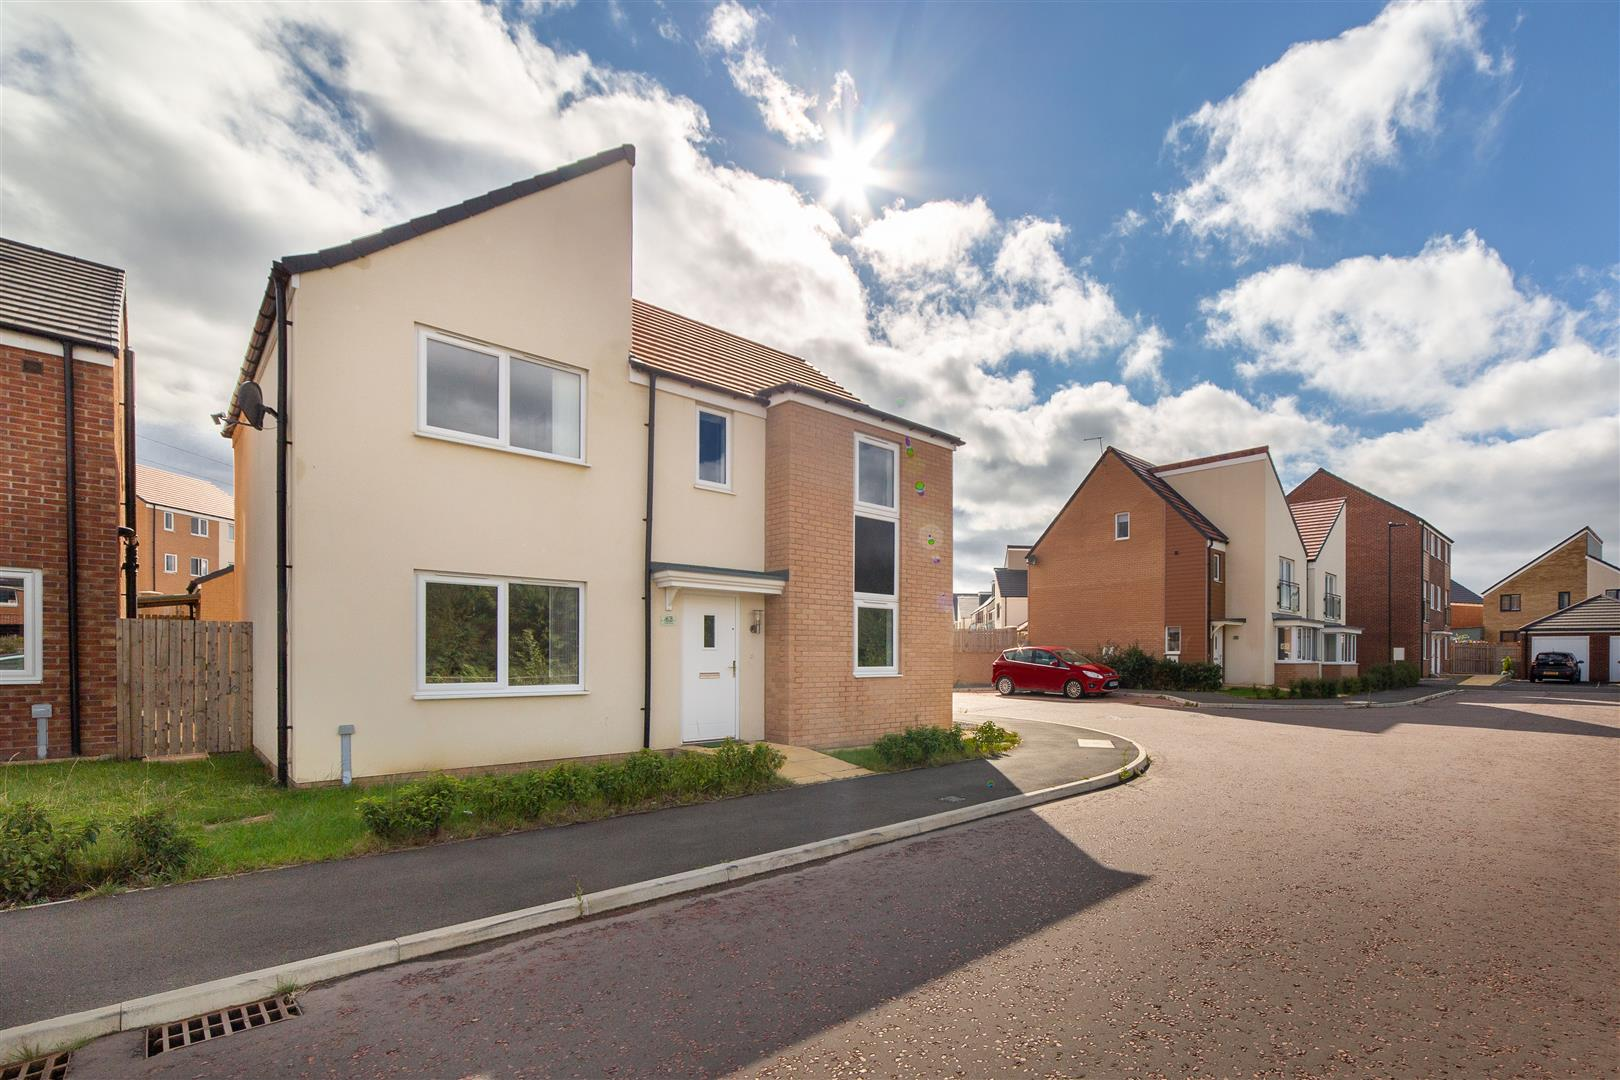 4 bed detached house for sale in Newcastle Upon Tyne, NE13 9DU  - Property Image 1